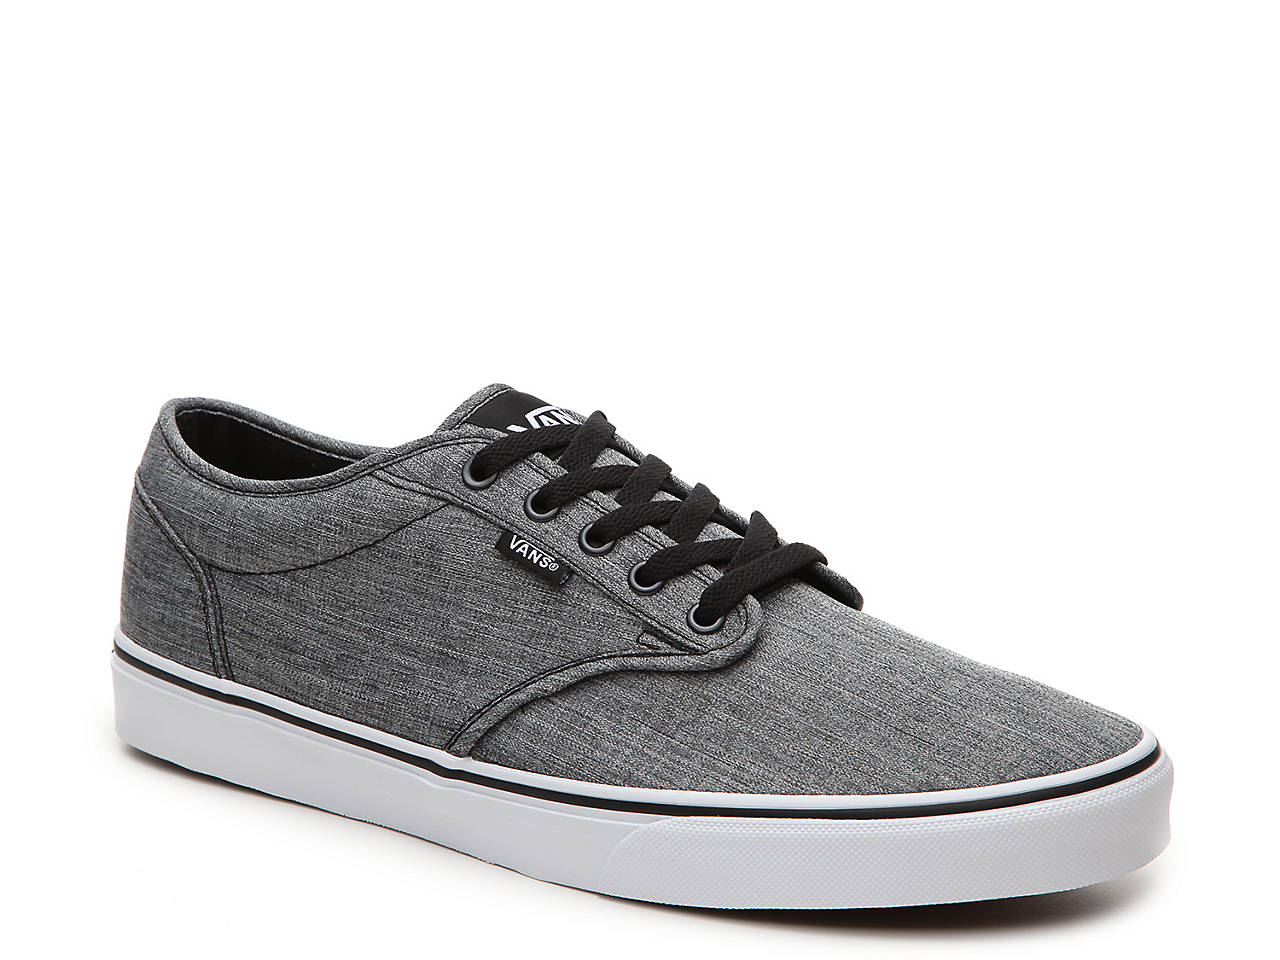 Vans Atwood Sneaker Men's Men's Shoes DSW  DSW